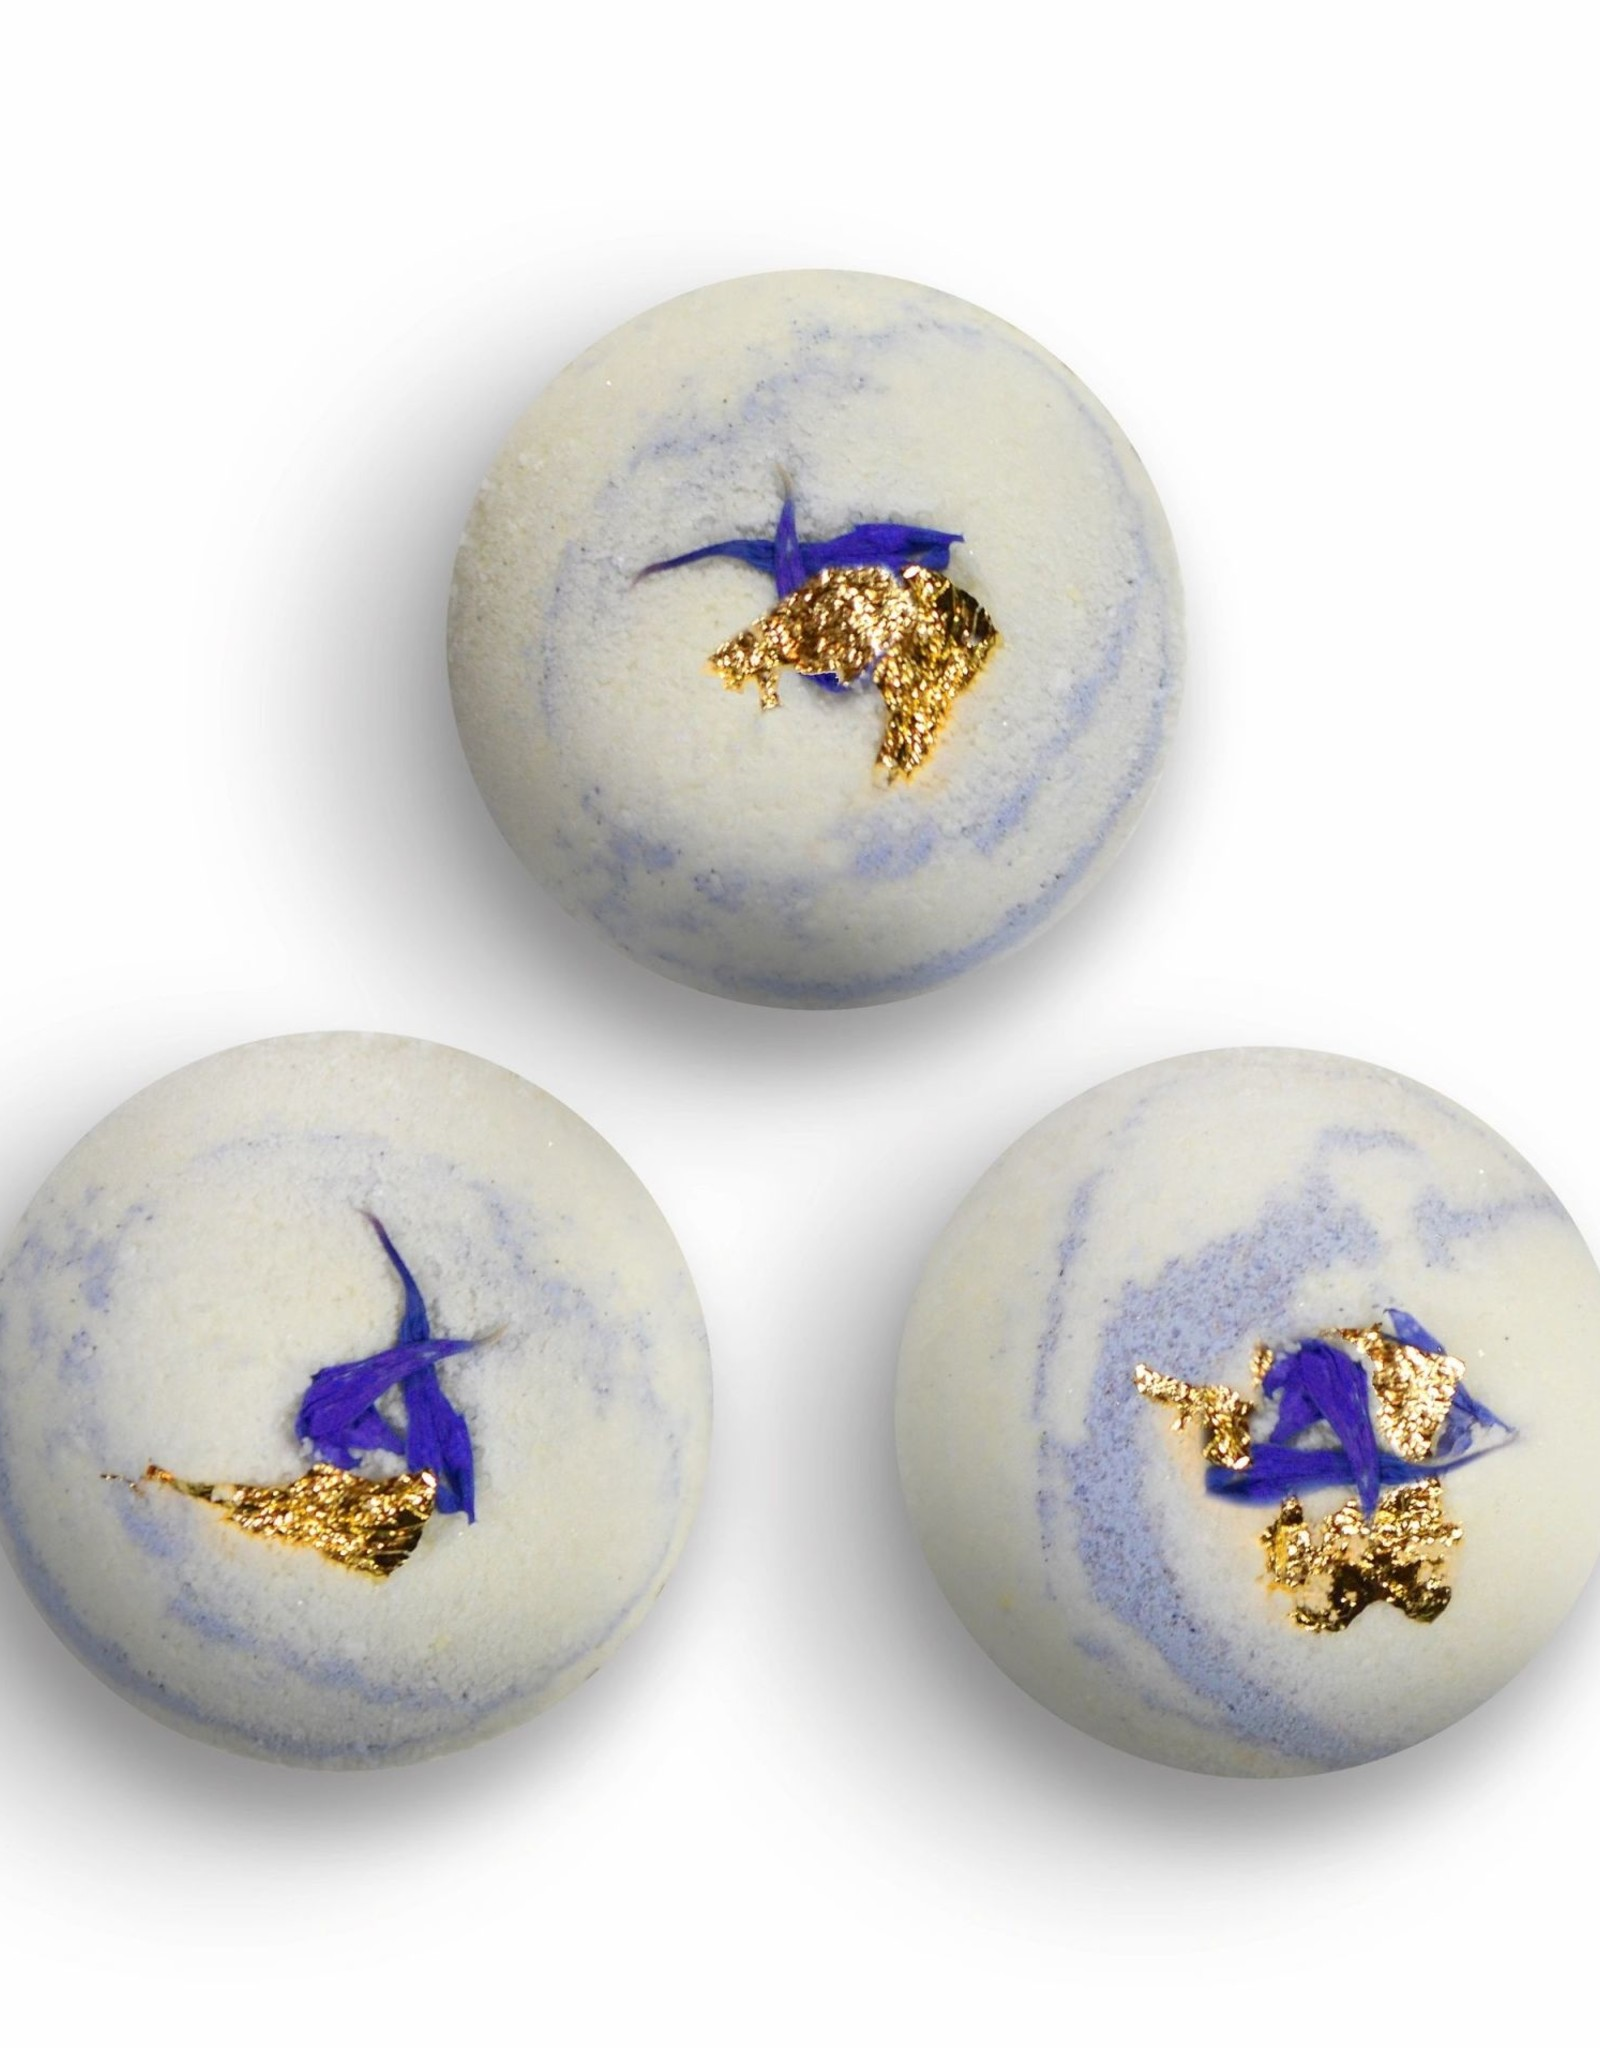 My Drink Bomb - Lavendar Lush - Set of 2